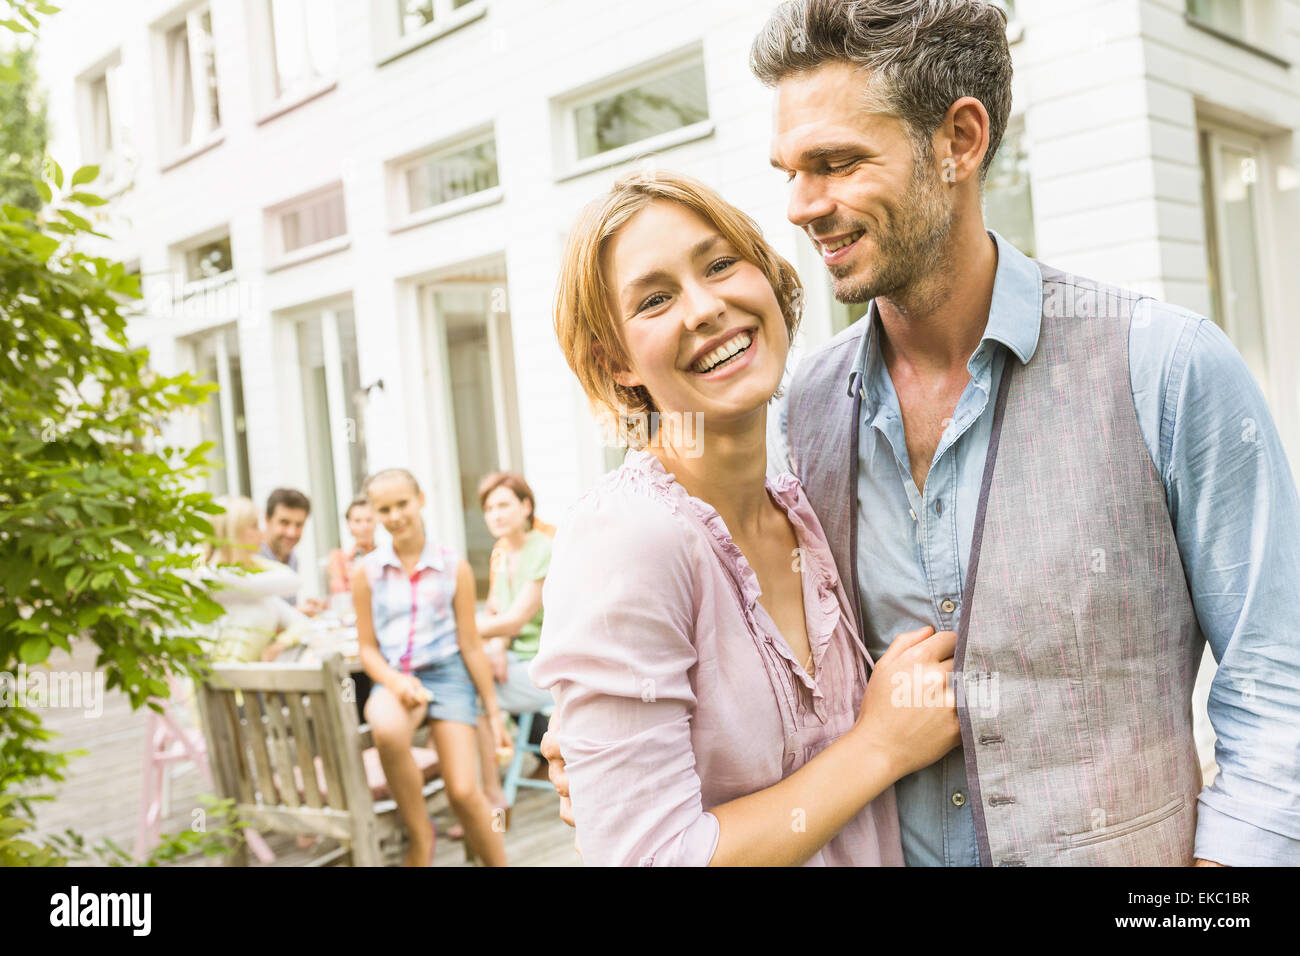 Couple hugging in garden, family in background Stock Photo